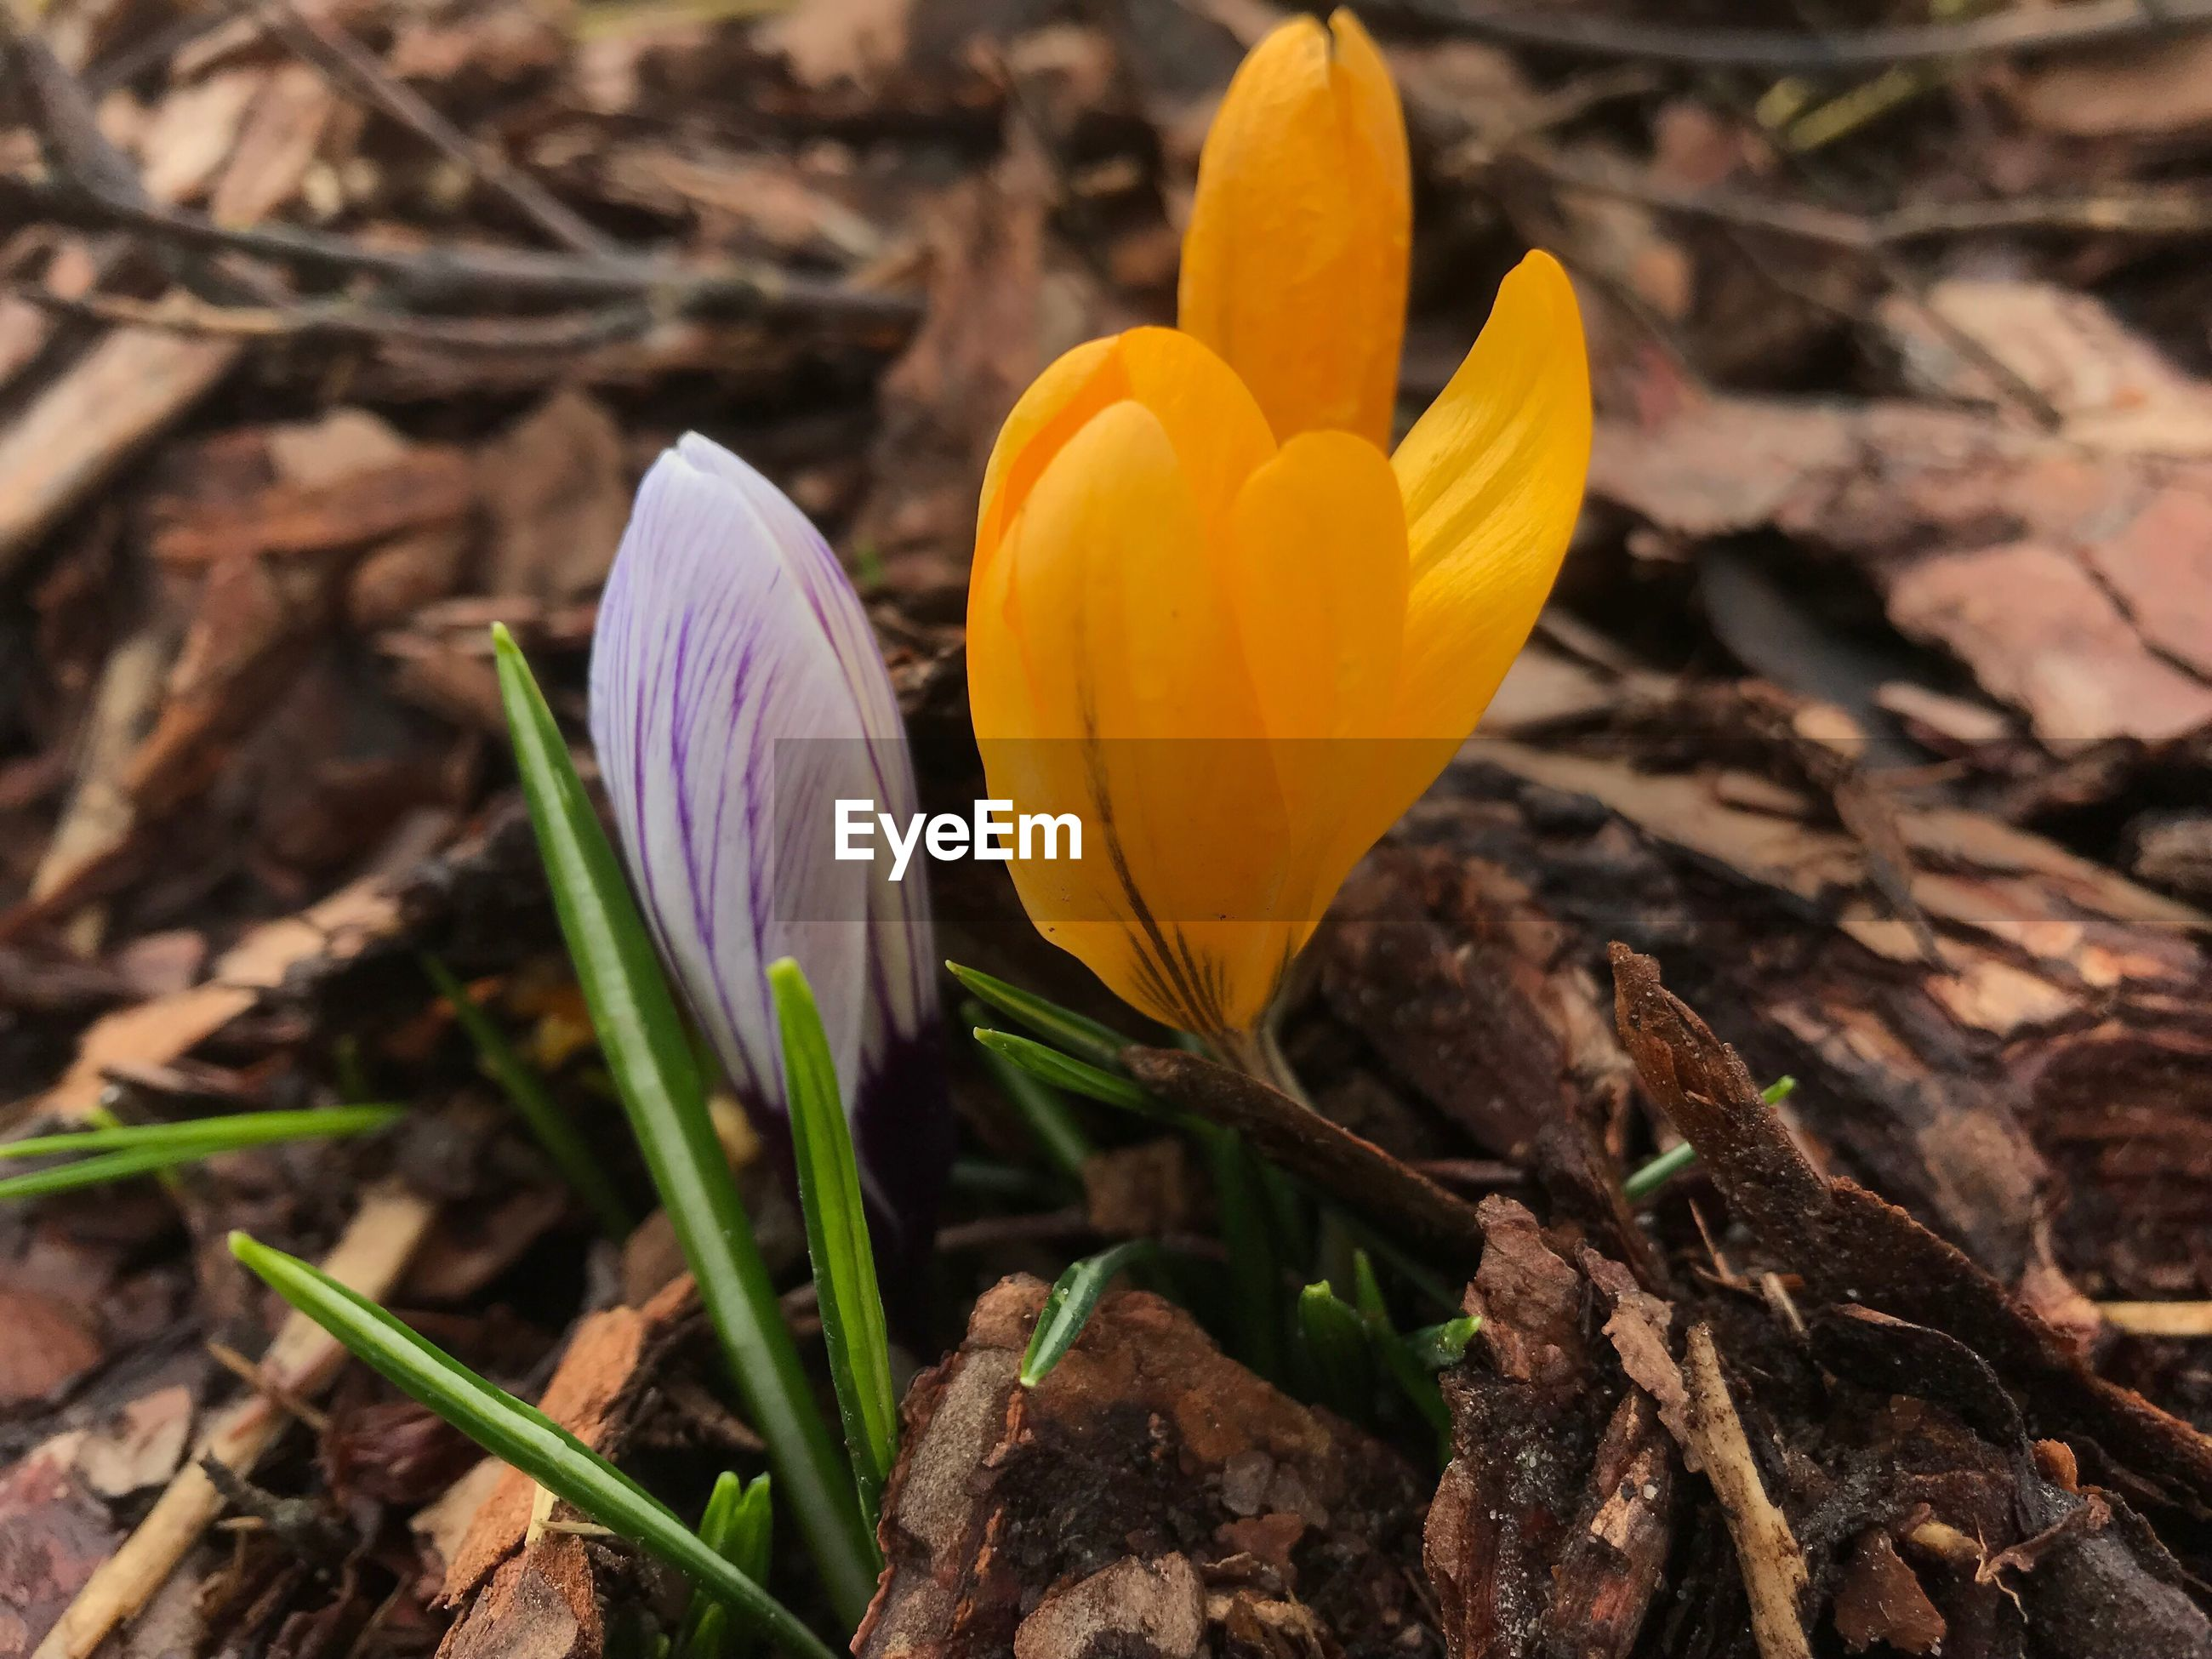 CLOSE-UP OF YELLOW CROCUS FLOWERS ON LAND